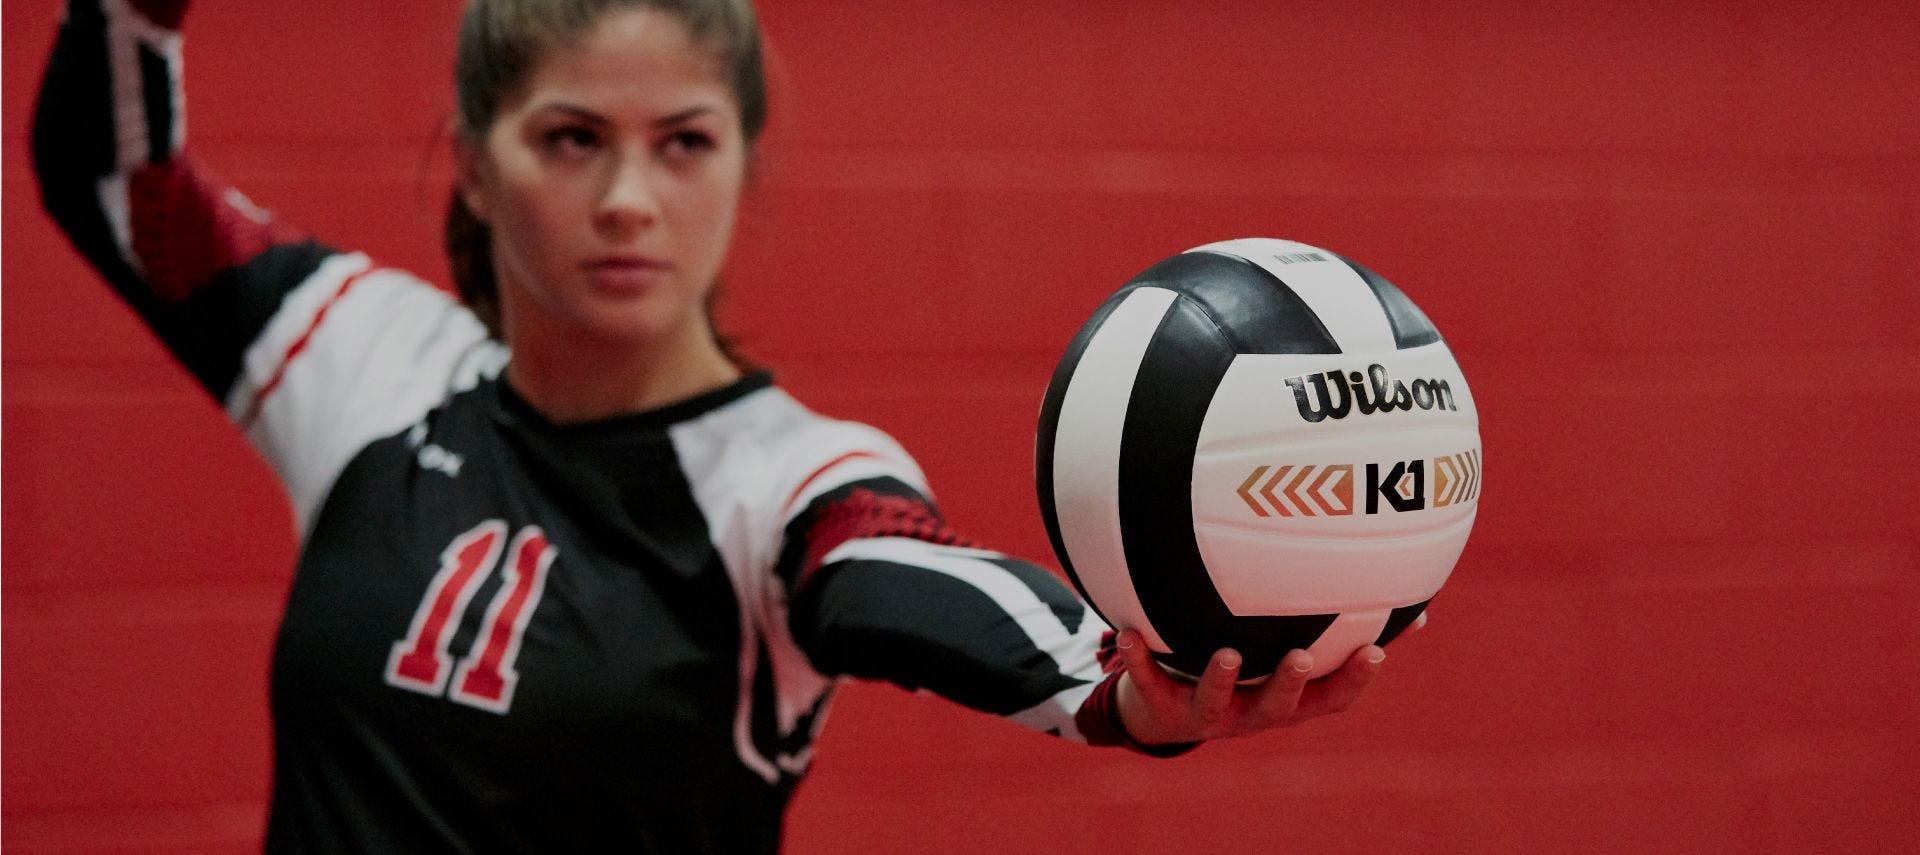 Indoor volleyball player setting up to serve